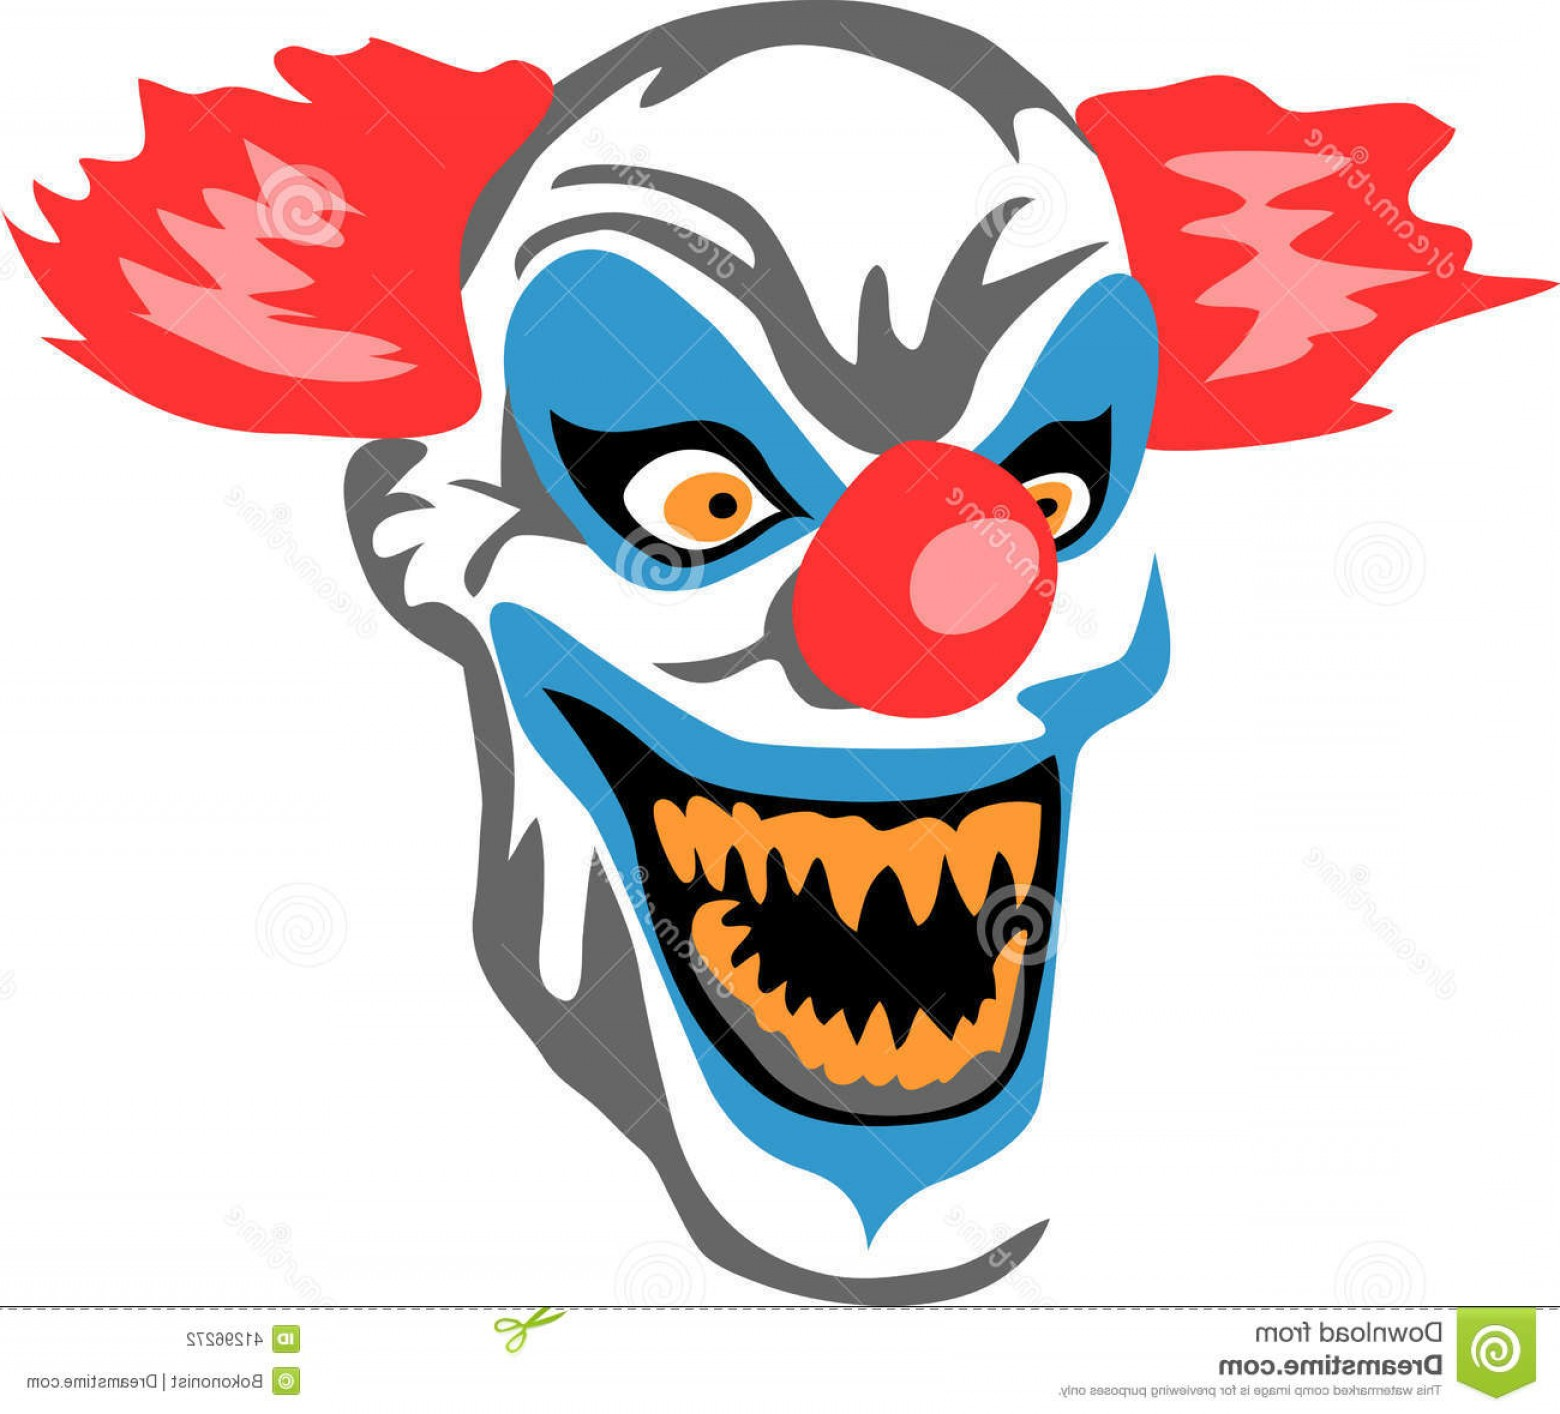 Creepy Clown Vector: Stock Illustration Scary Clown Stylized Color Illustration Image